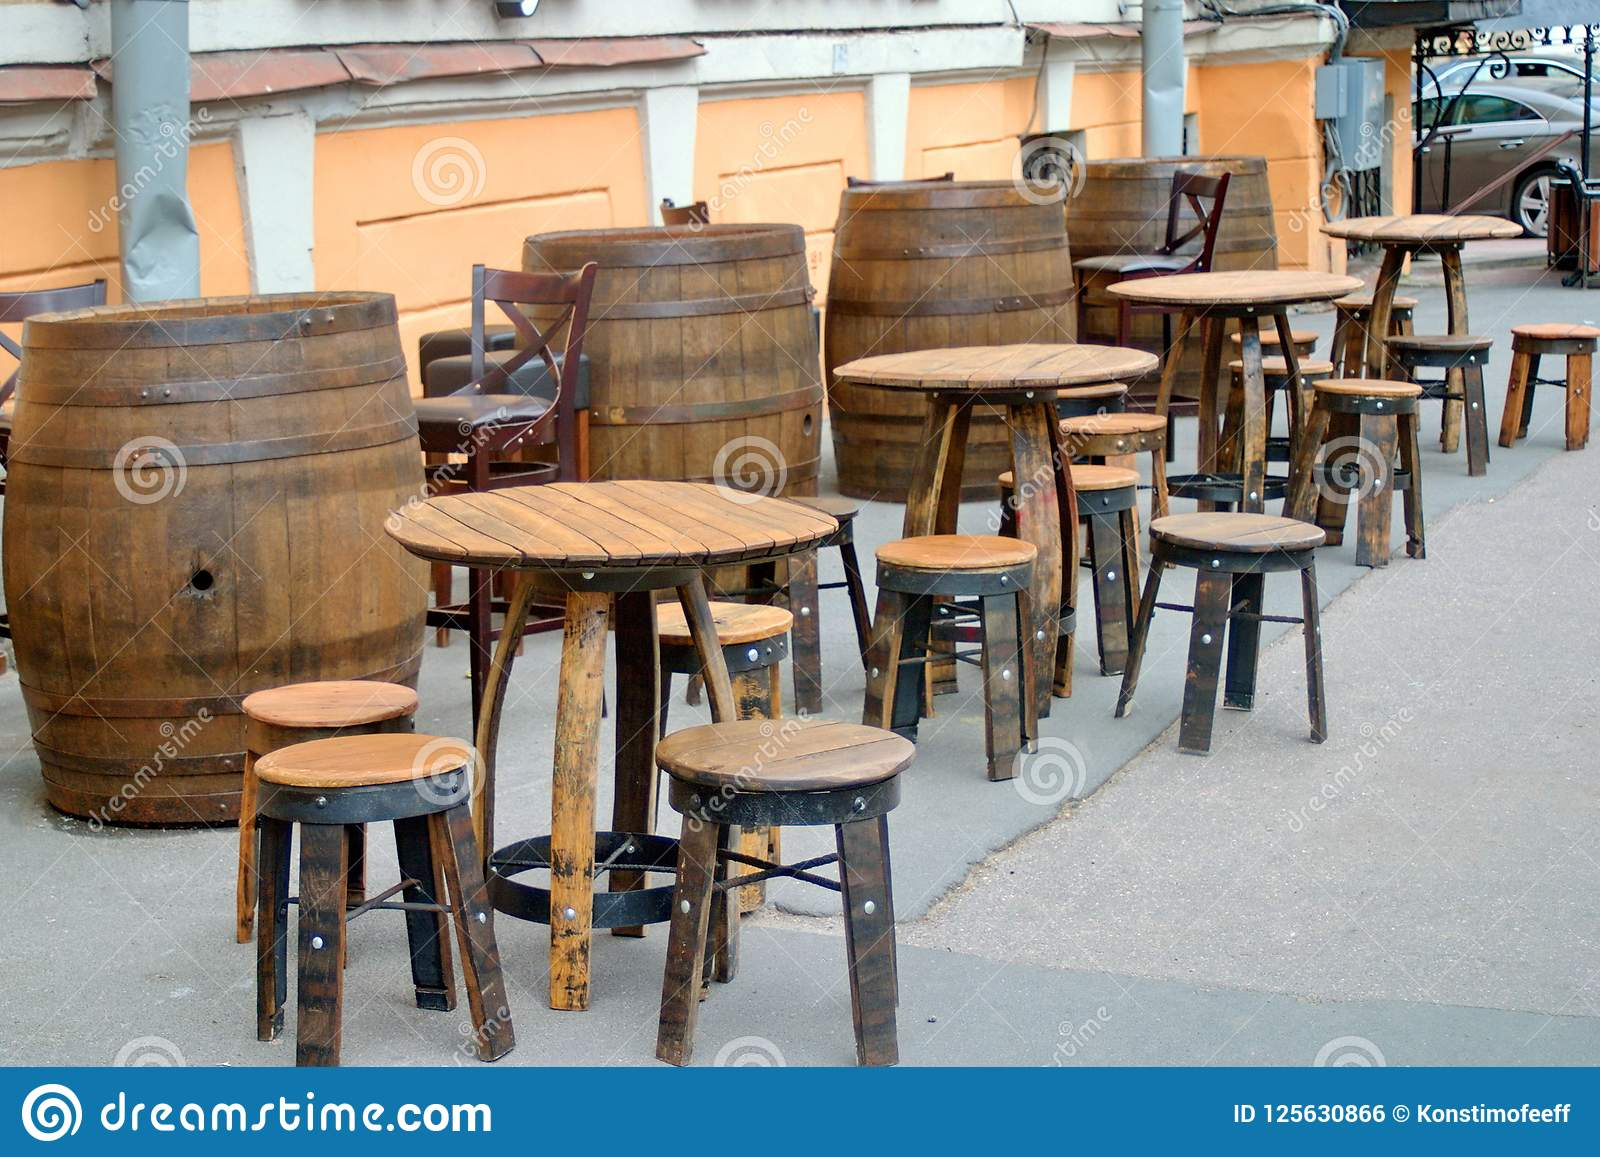 Temporary Street Cafe With Retro Chairs And Tables Made Of